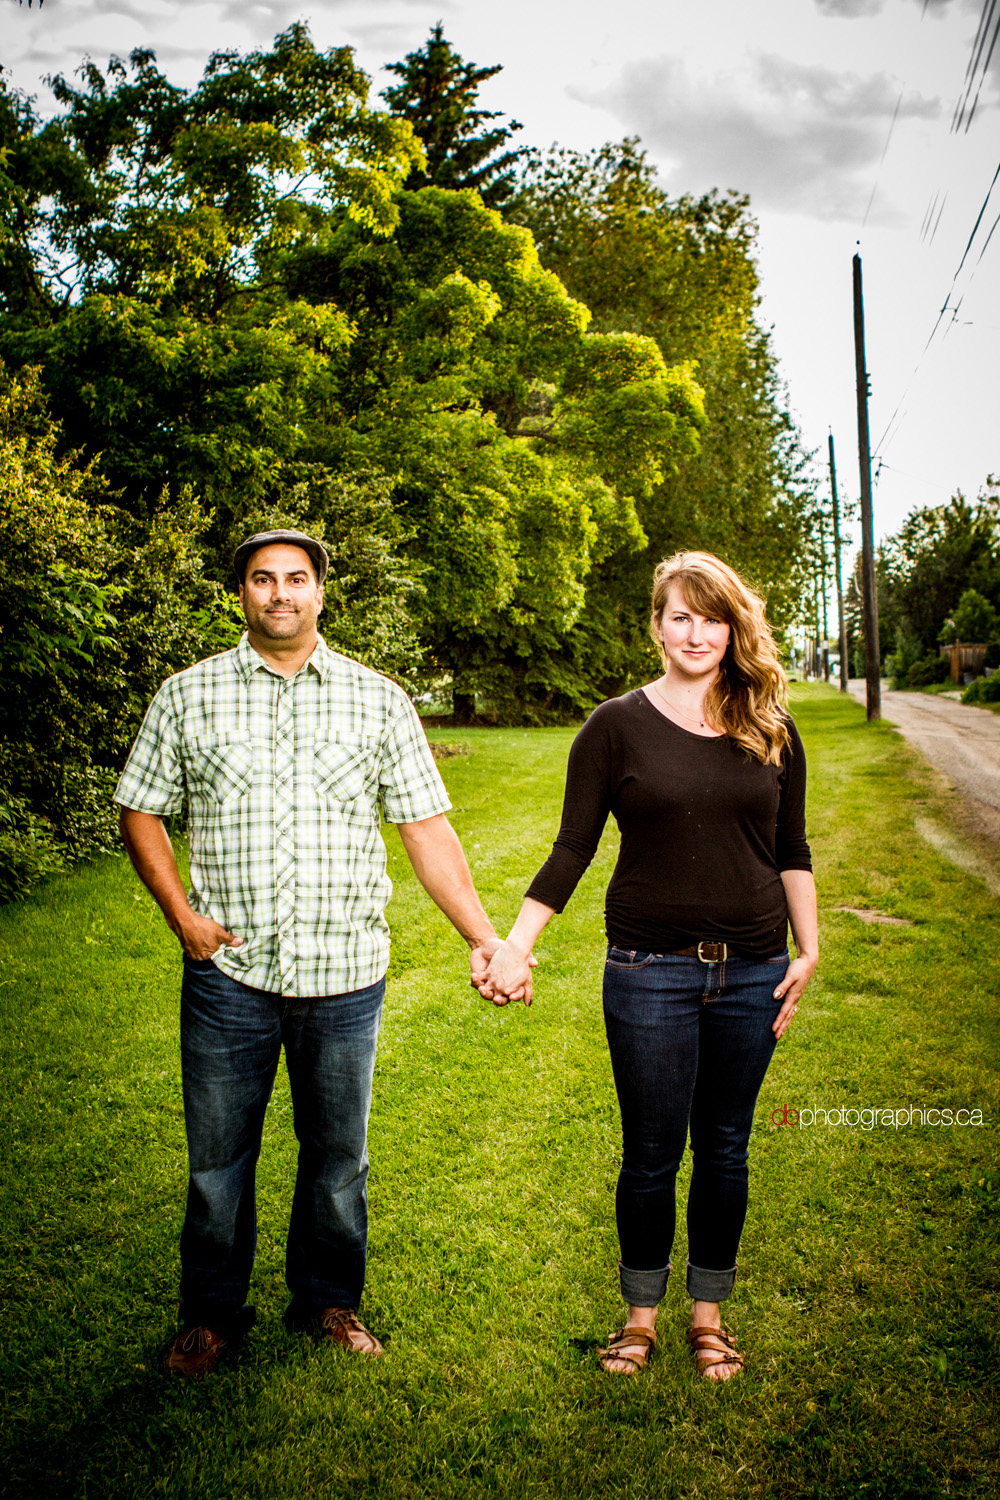 Amy & Ian Engagement Shoot - 20140626 - 0068.jpg